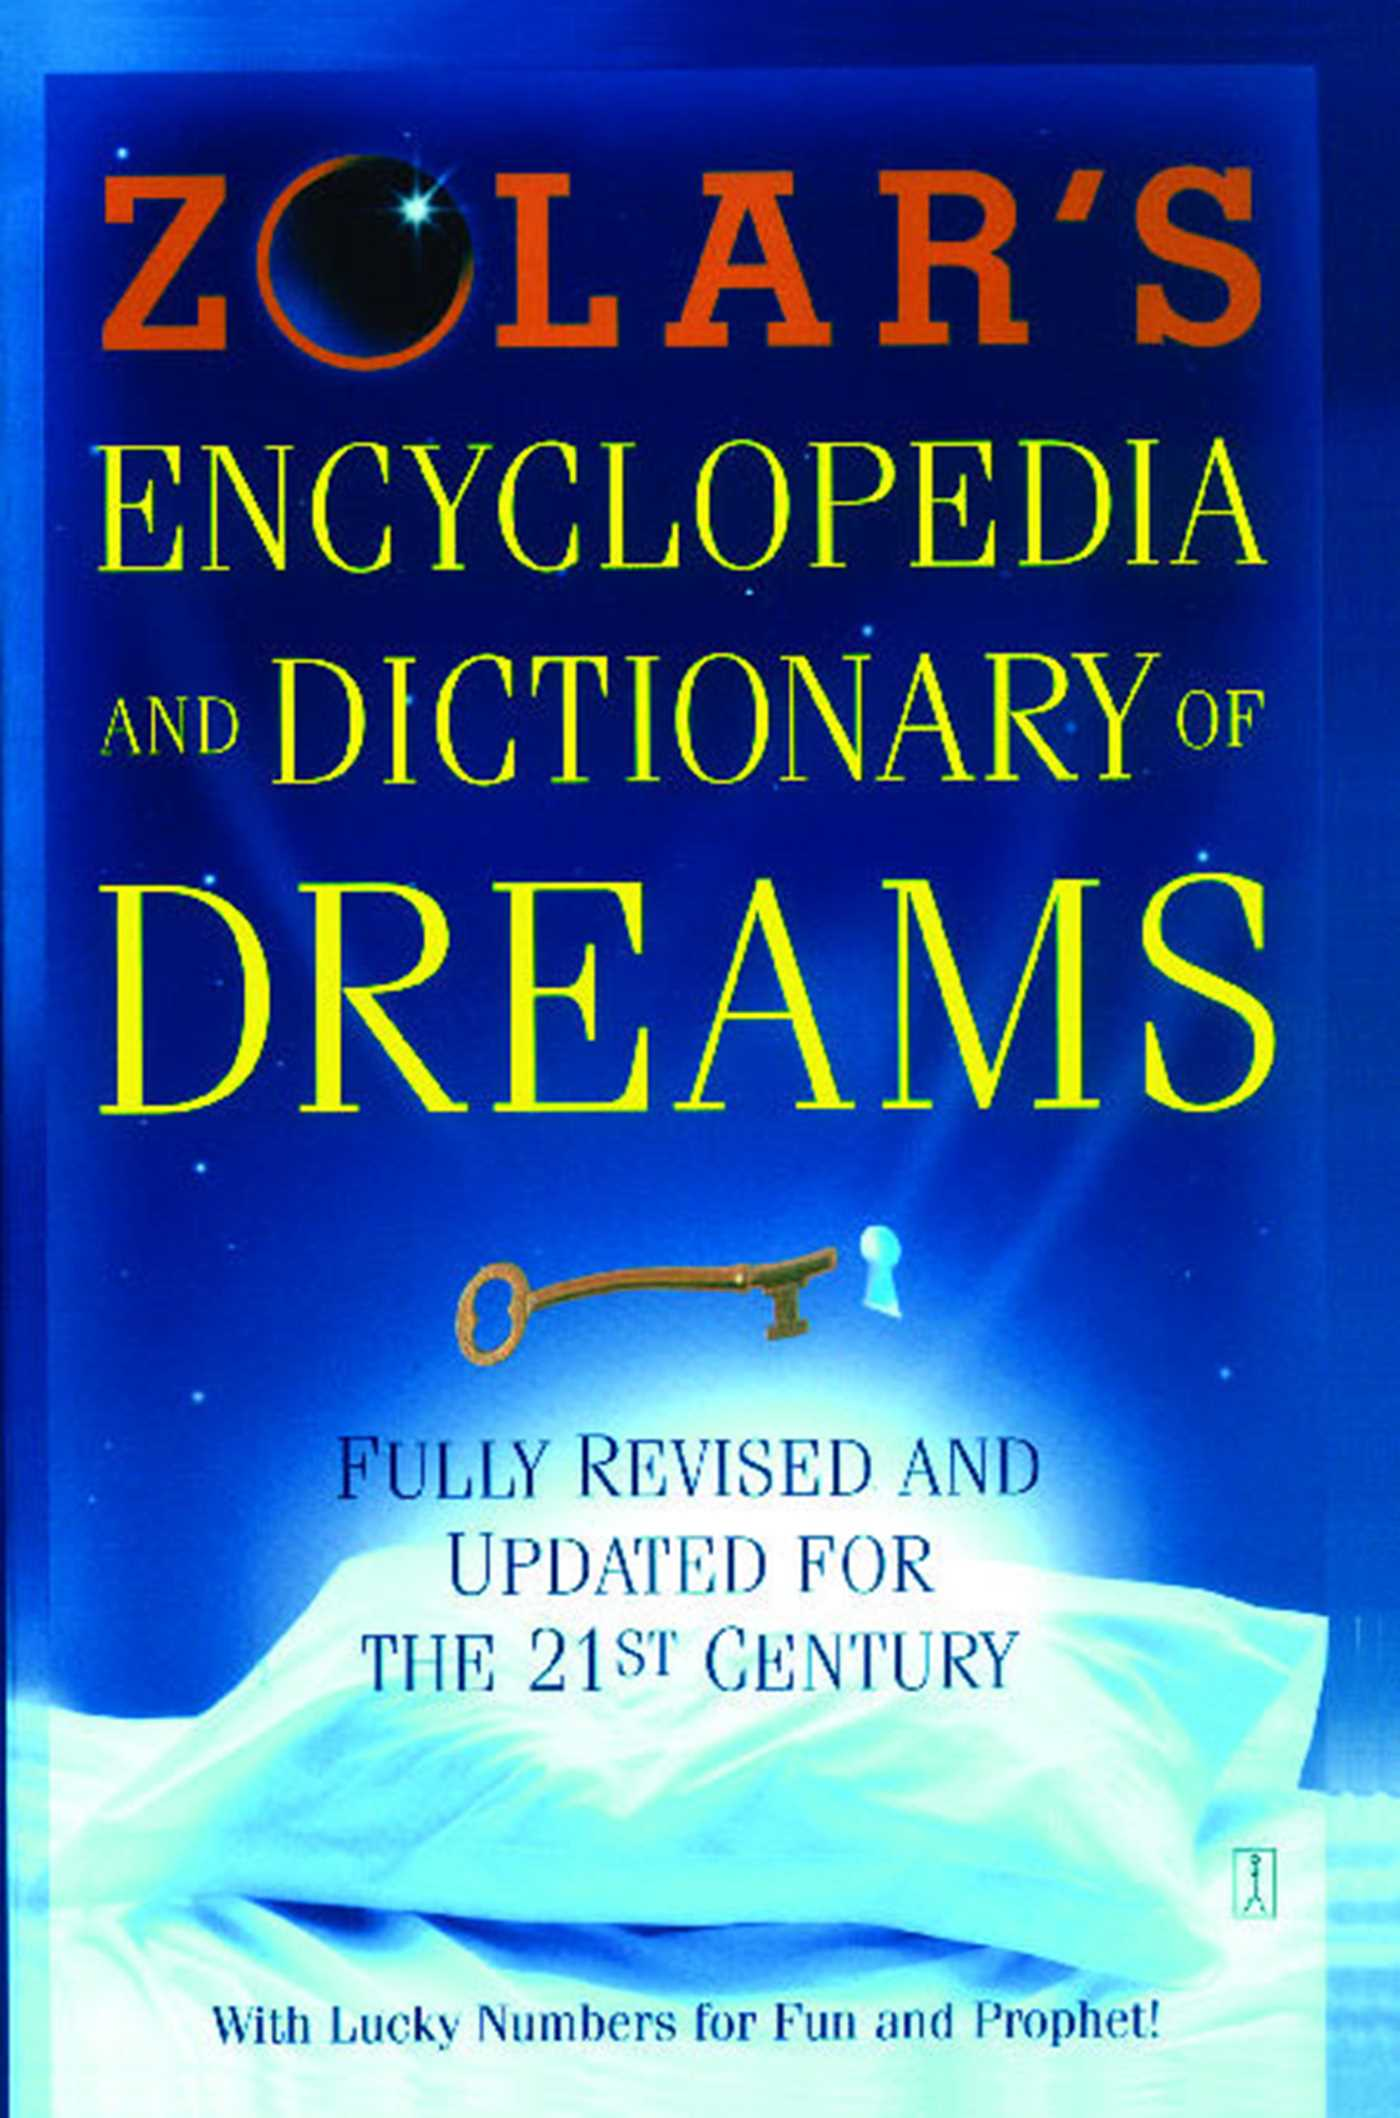 Zolars encyclopedia and dictionary of dreams 9781451603583 hr